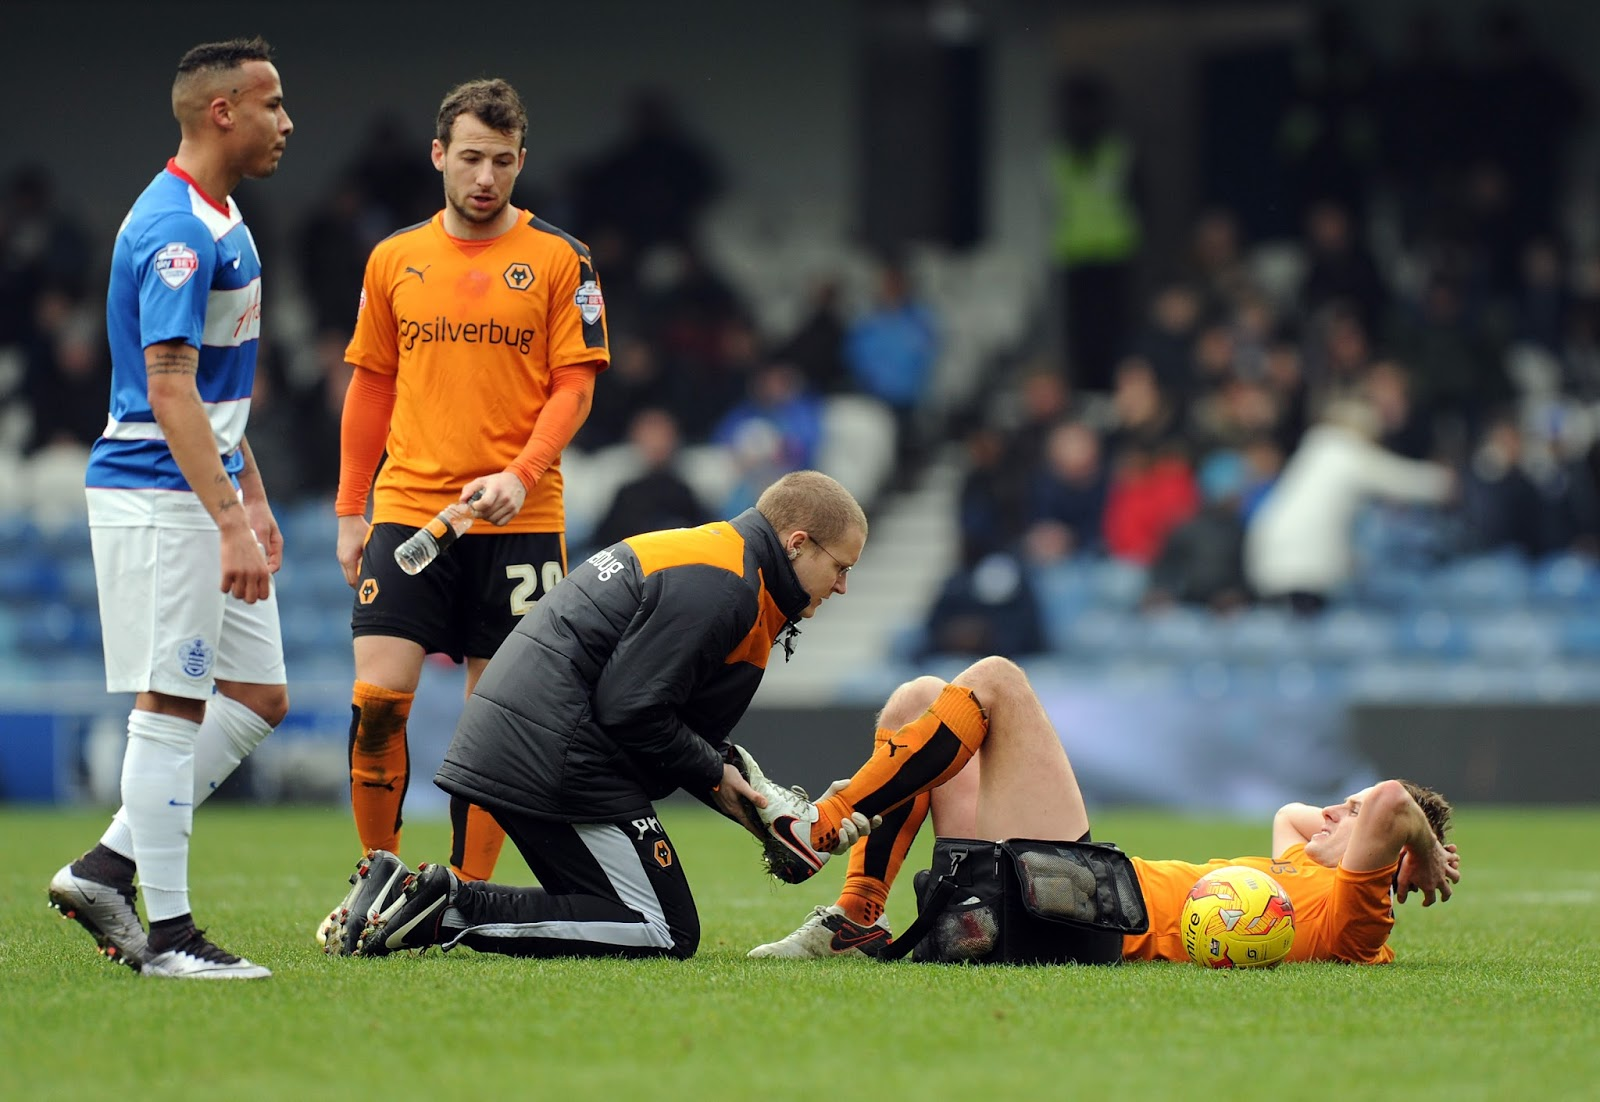 Phil Haywveard assessing Dave Edwards' leg